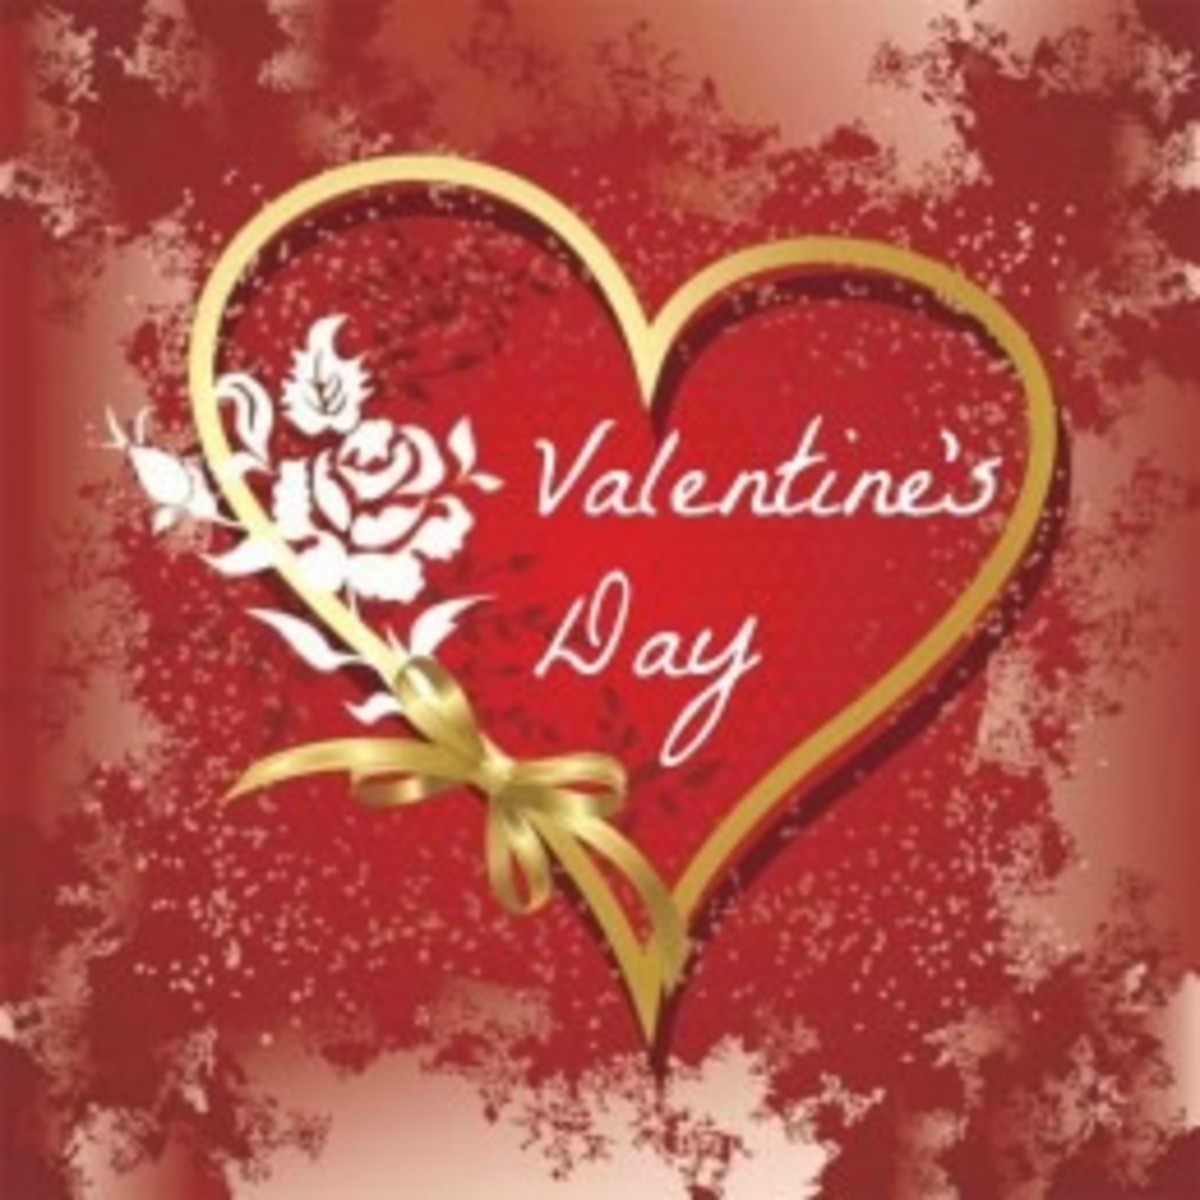 200 VALENTINE'S DAY PICTURES | Valentine's Day Cards